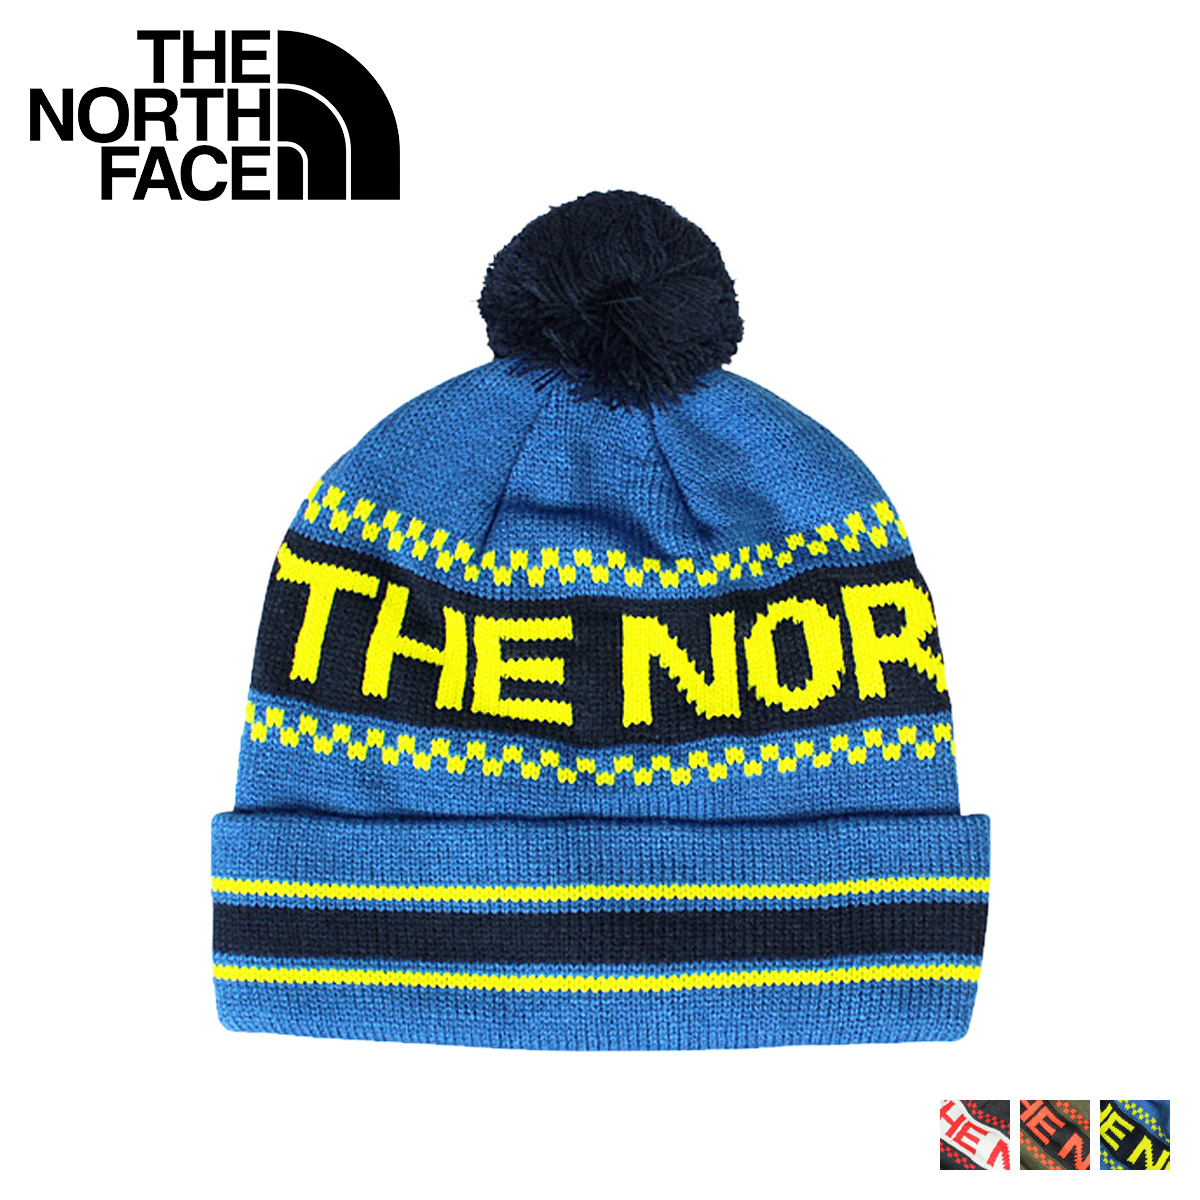 091ee978503 Whats up Sports   SOLD OUT  the north face THE NORTH FACE knit Cap Beanie  knit hats caps Hat A6W6 3 color BEANIE SKI TUKE IV men s women s